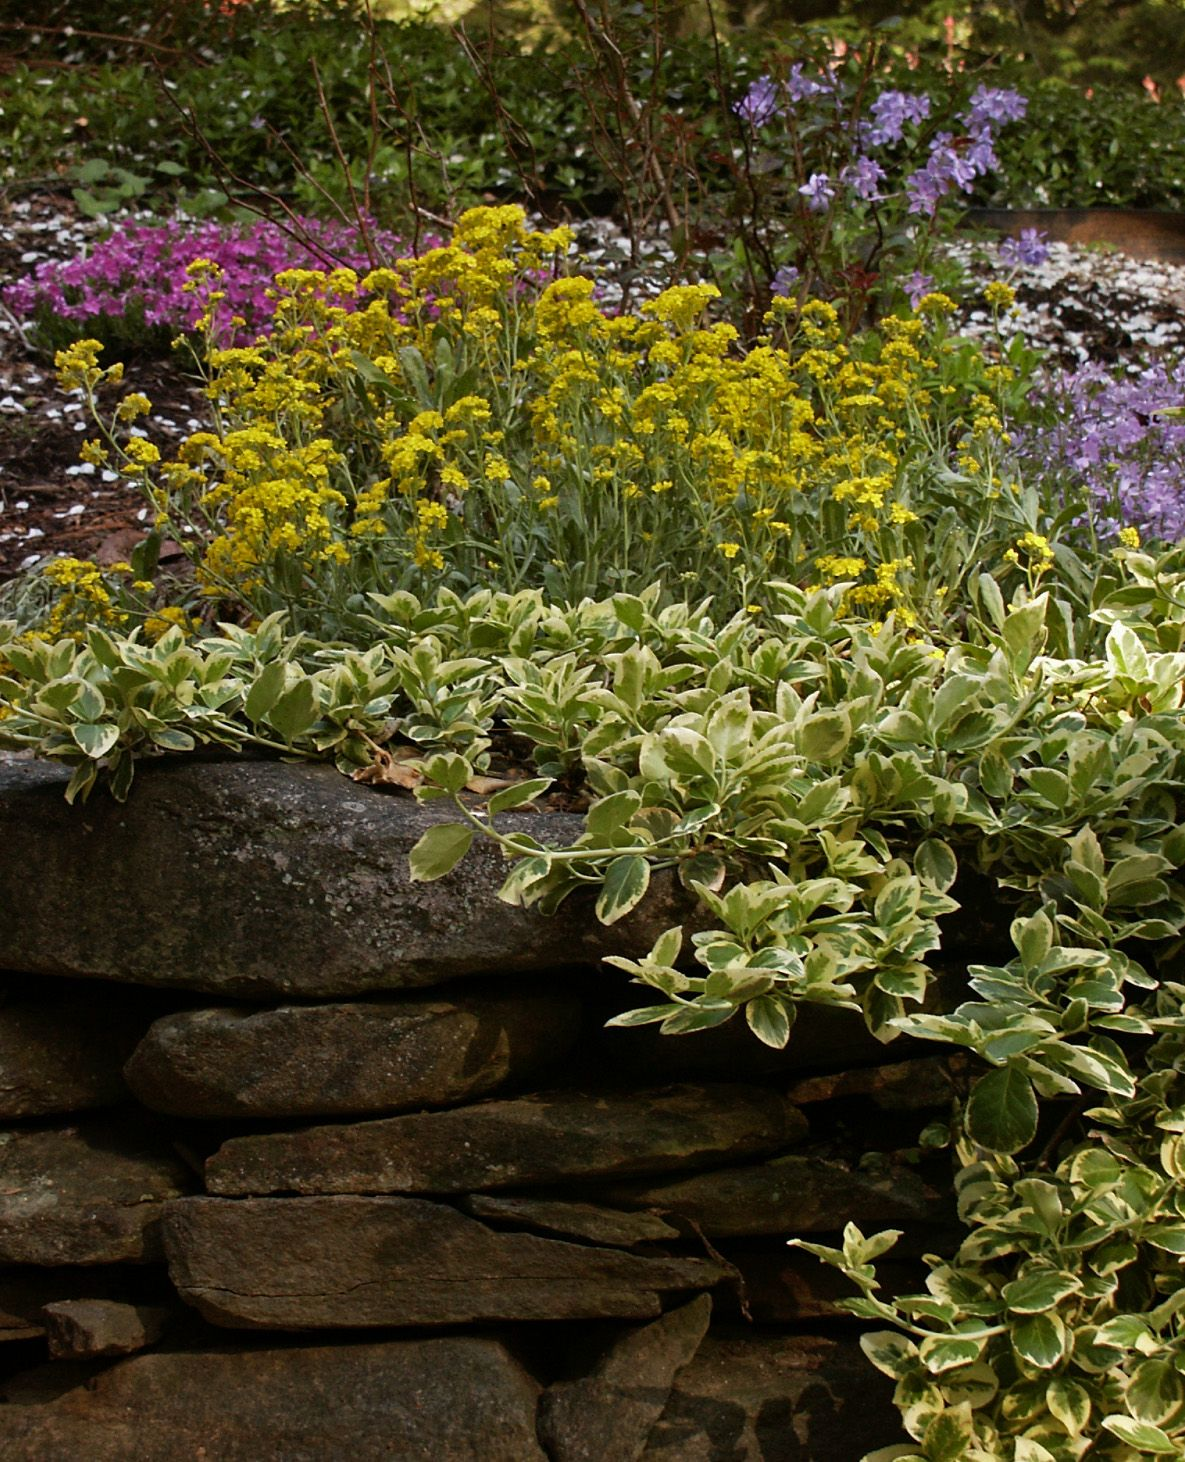 Ideas For Plants That Will Cascade Over Retaining Wall   New England  Gardening Forum   GardenWeb